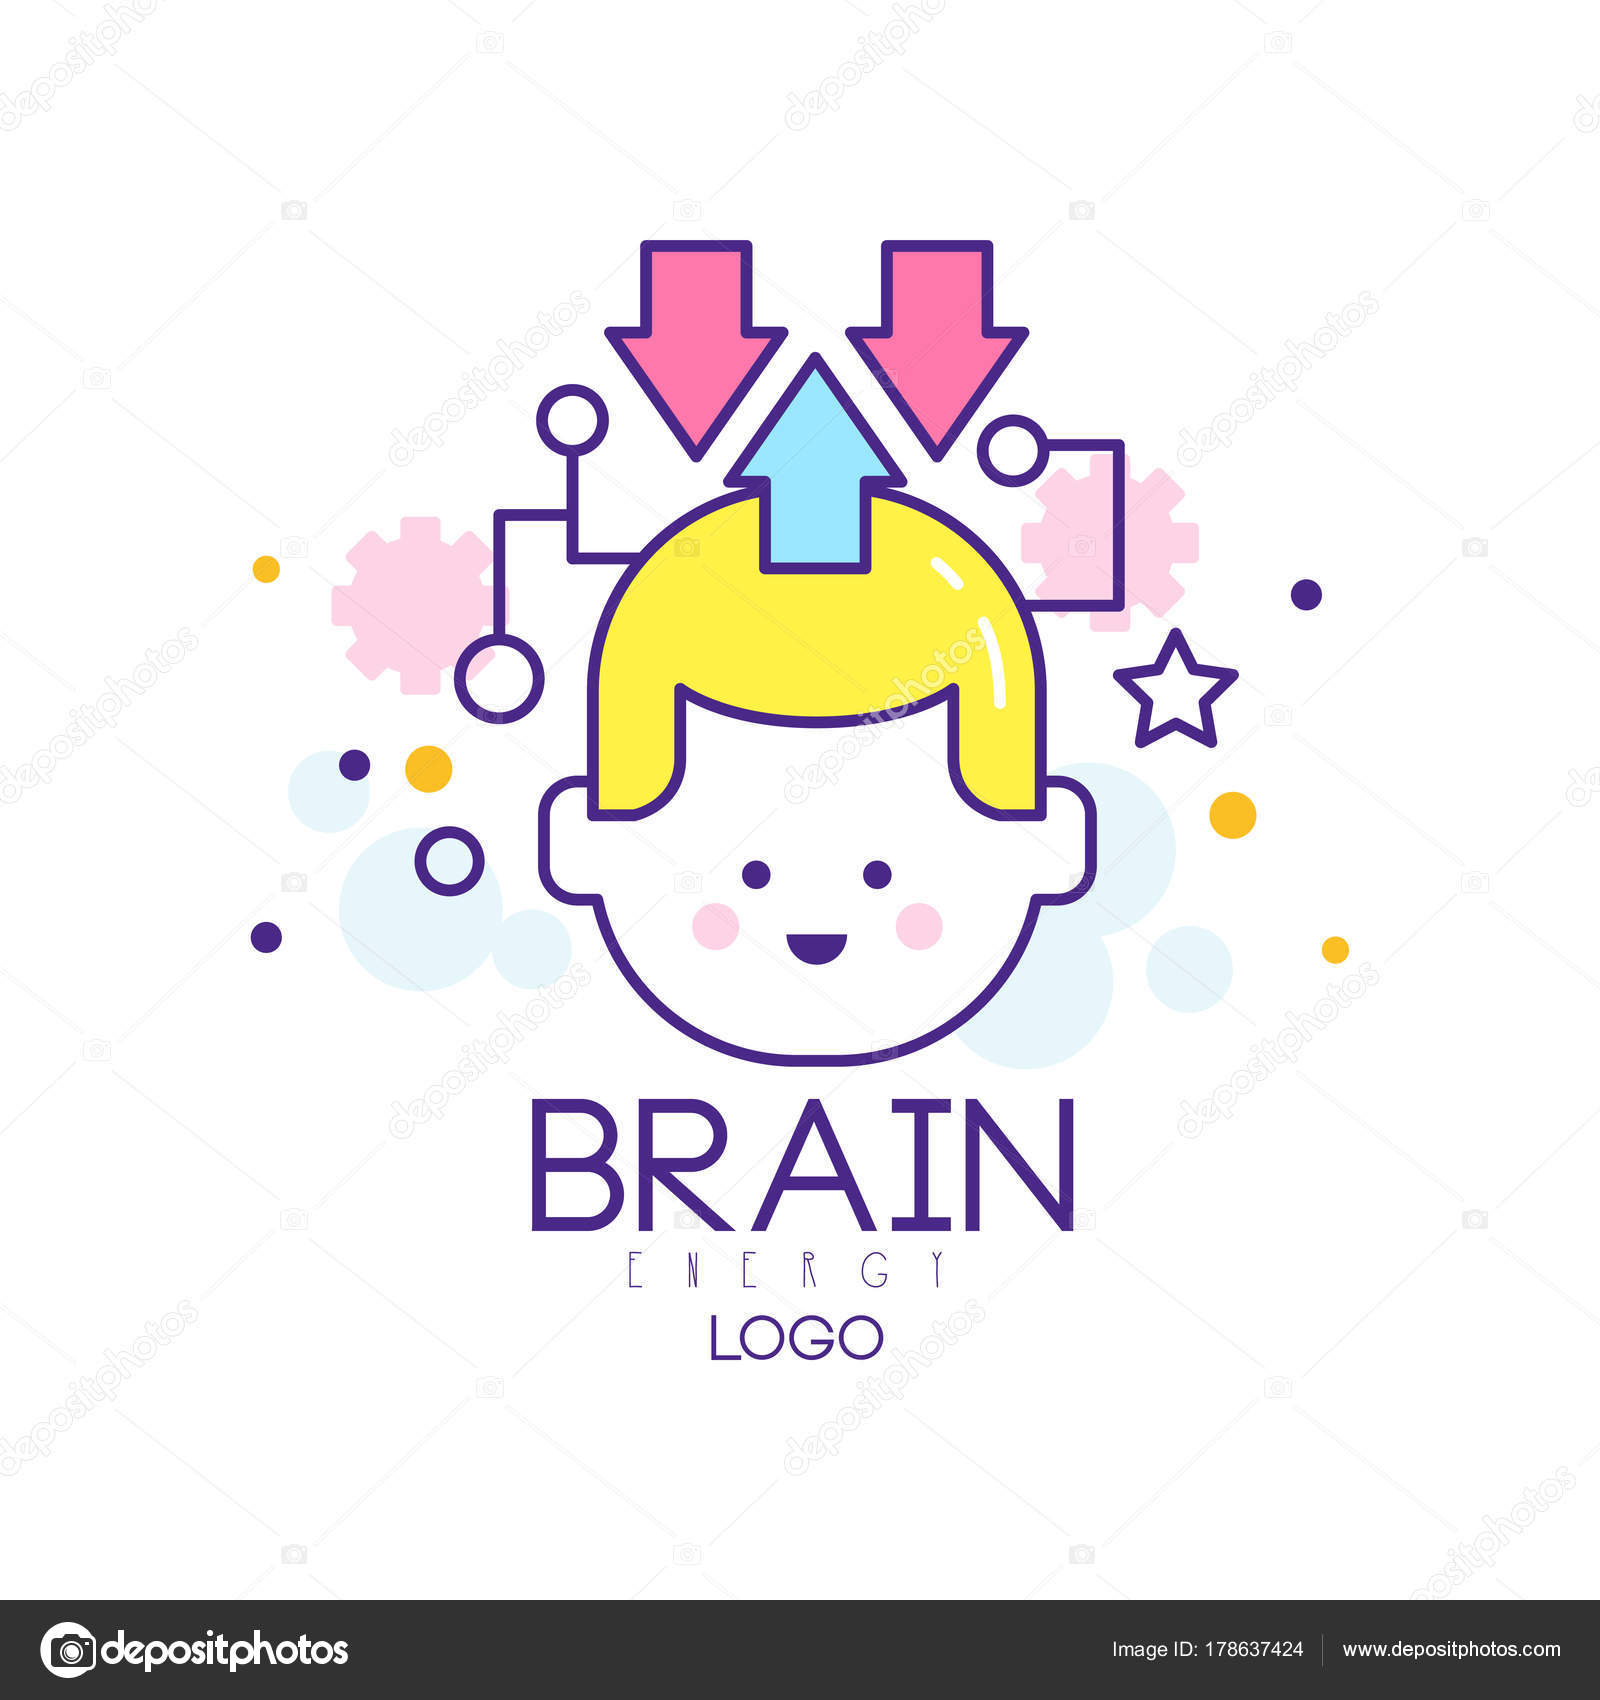 Abstract silhouette of child head in thinking process generation abstract silhouette of child head in thinking process generation of knowledge concept of children education and creativity brain energy symbol in outline biocorpaavc